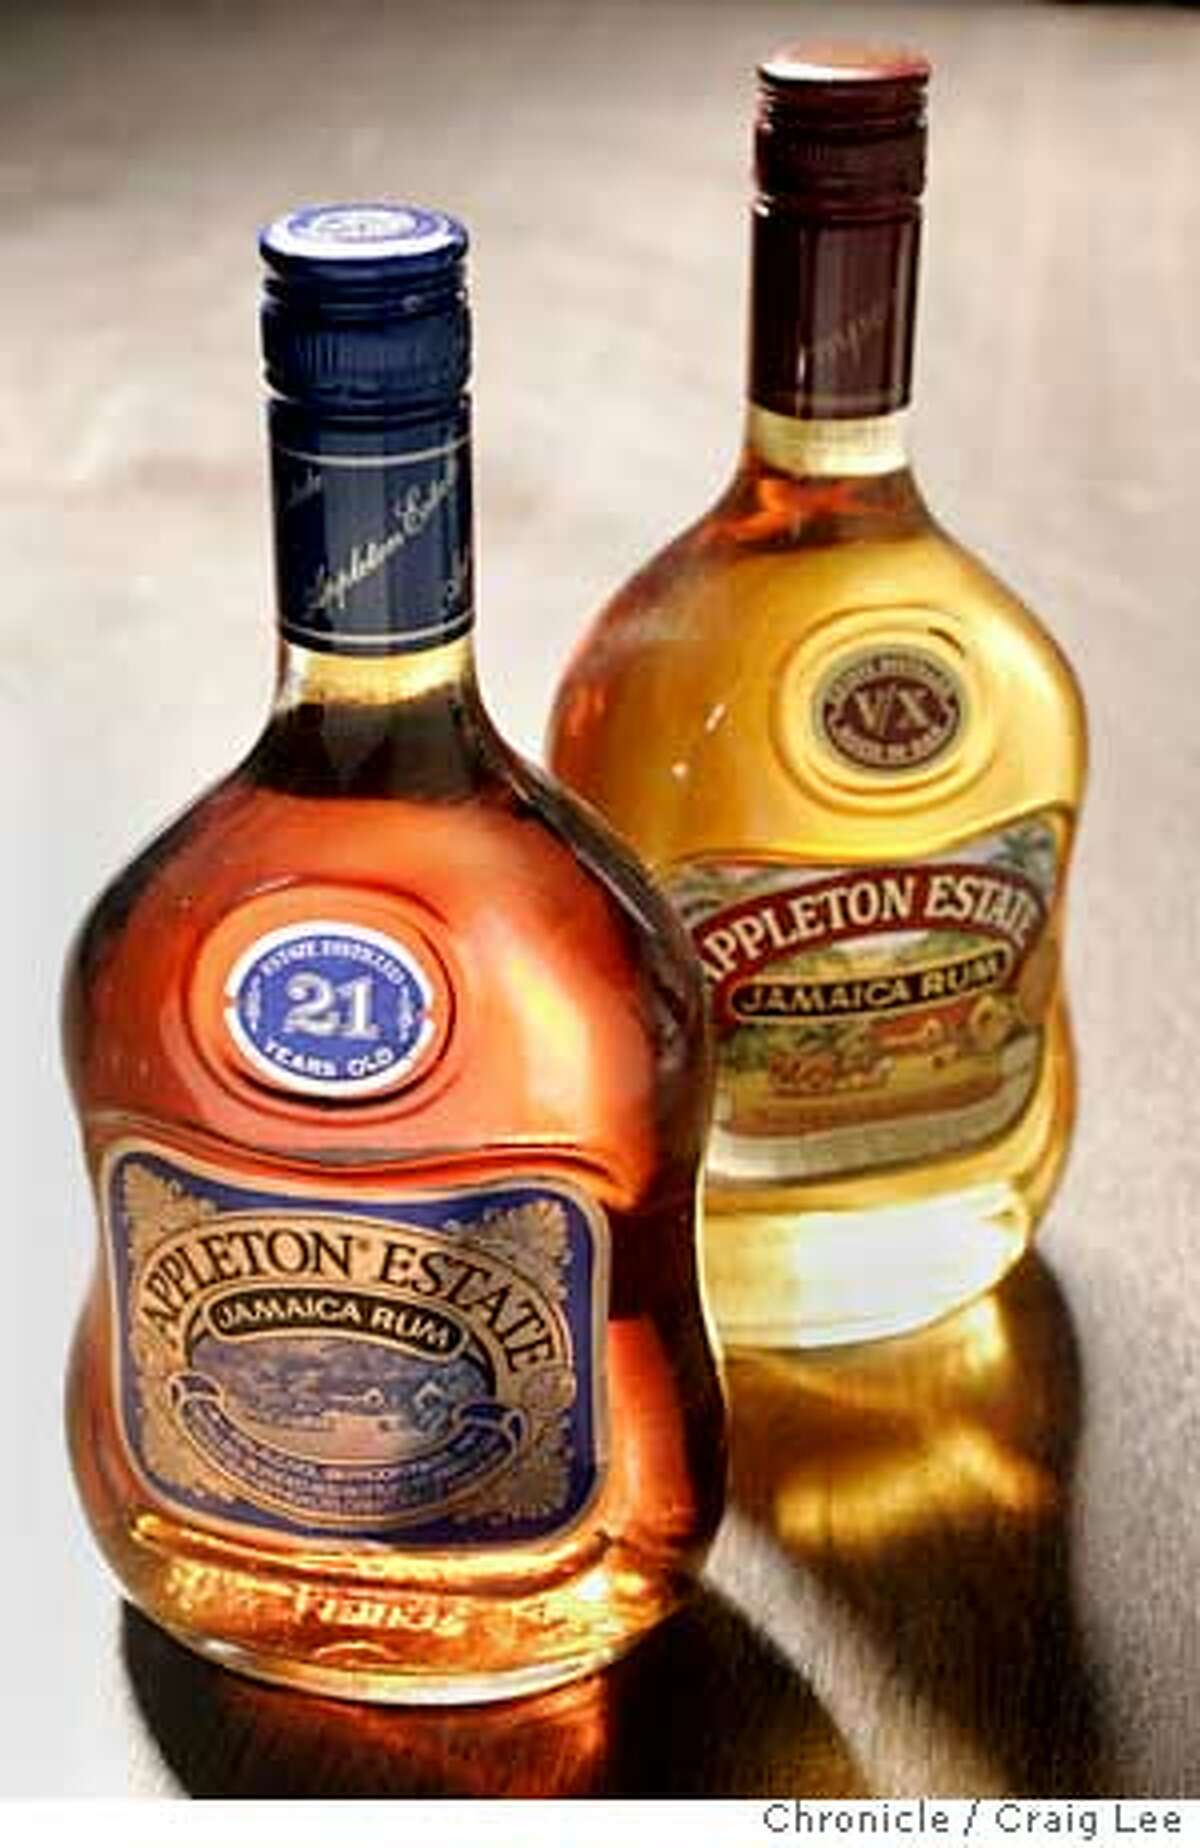 For a Spirits column on rum. Photo of Appleton Estate VX Jamaica Rum (right) and Appleton Estate 21-Year-Old Jamaica Rum (left). Event on 10/1/04 in San Francisco. Craig Lee / The Chronicle